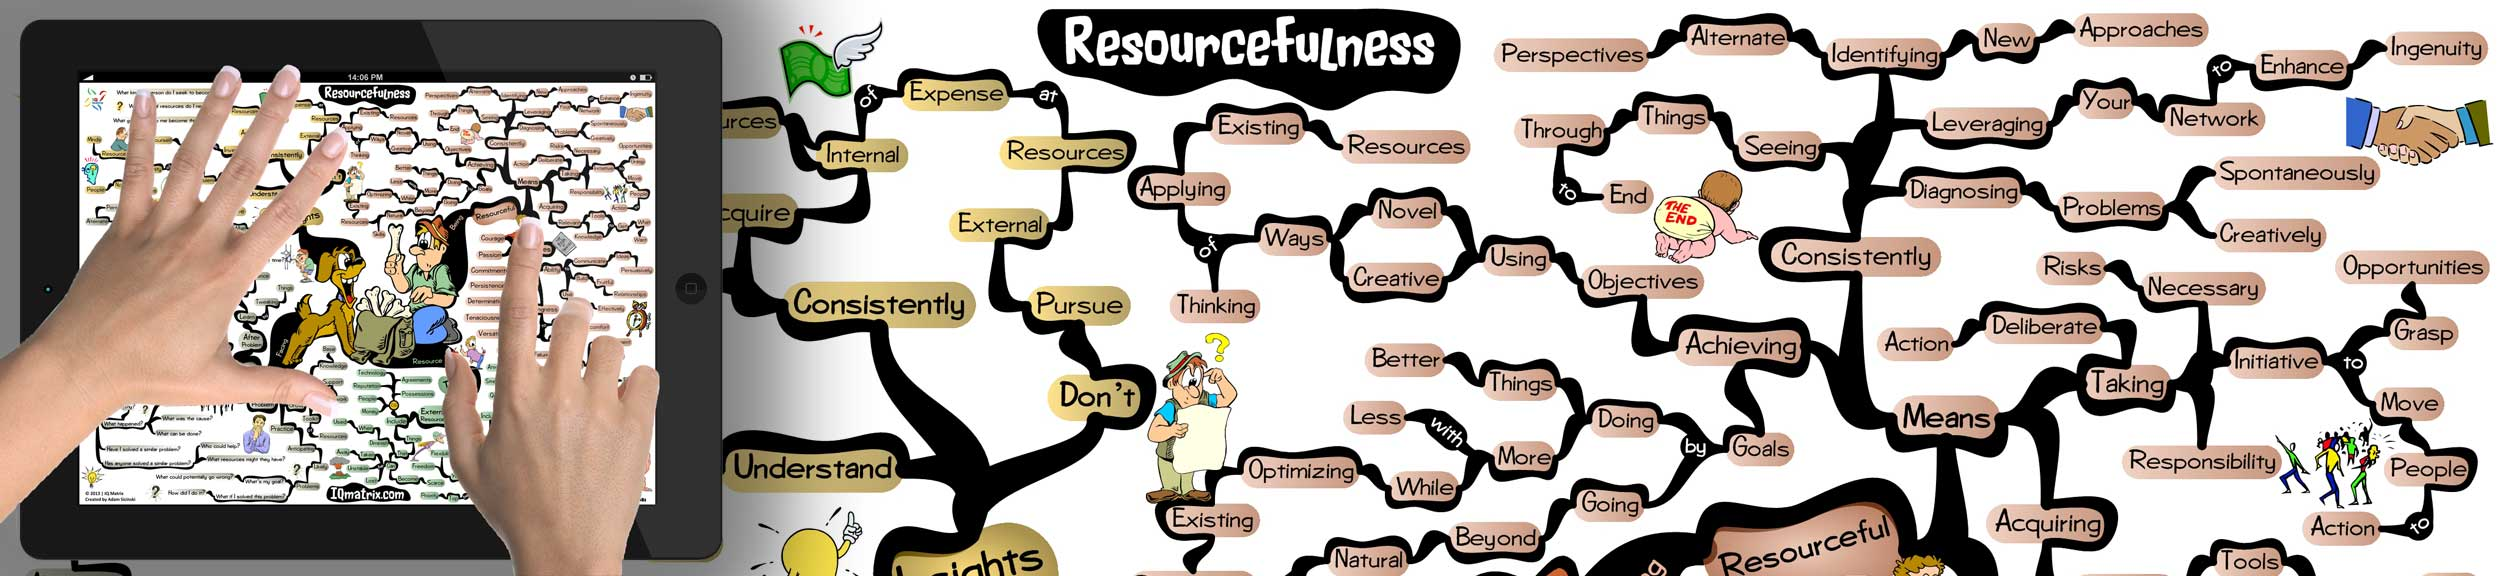 How to Be Resourceful recommend